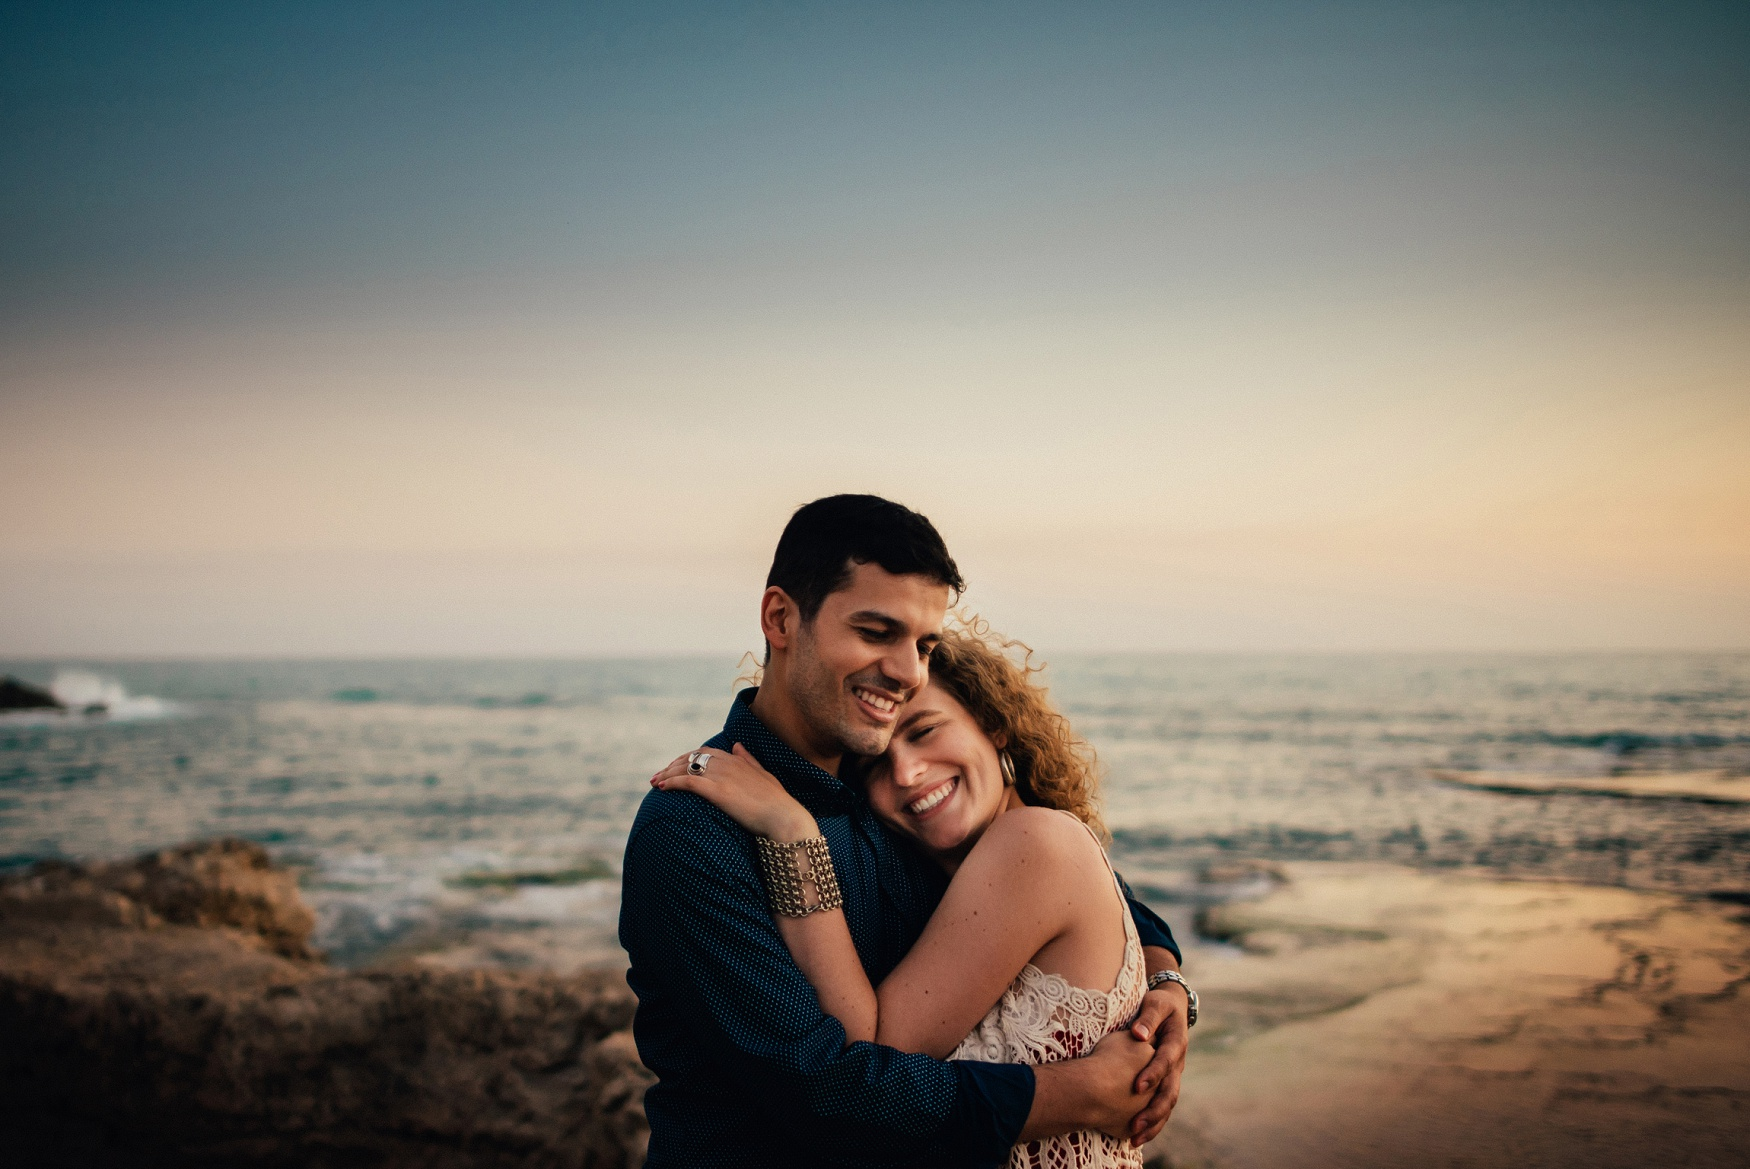 bestof2016_098 beirut lebanon pre wedding session.jpg